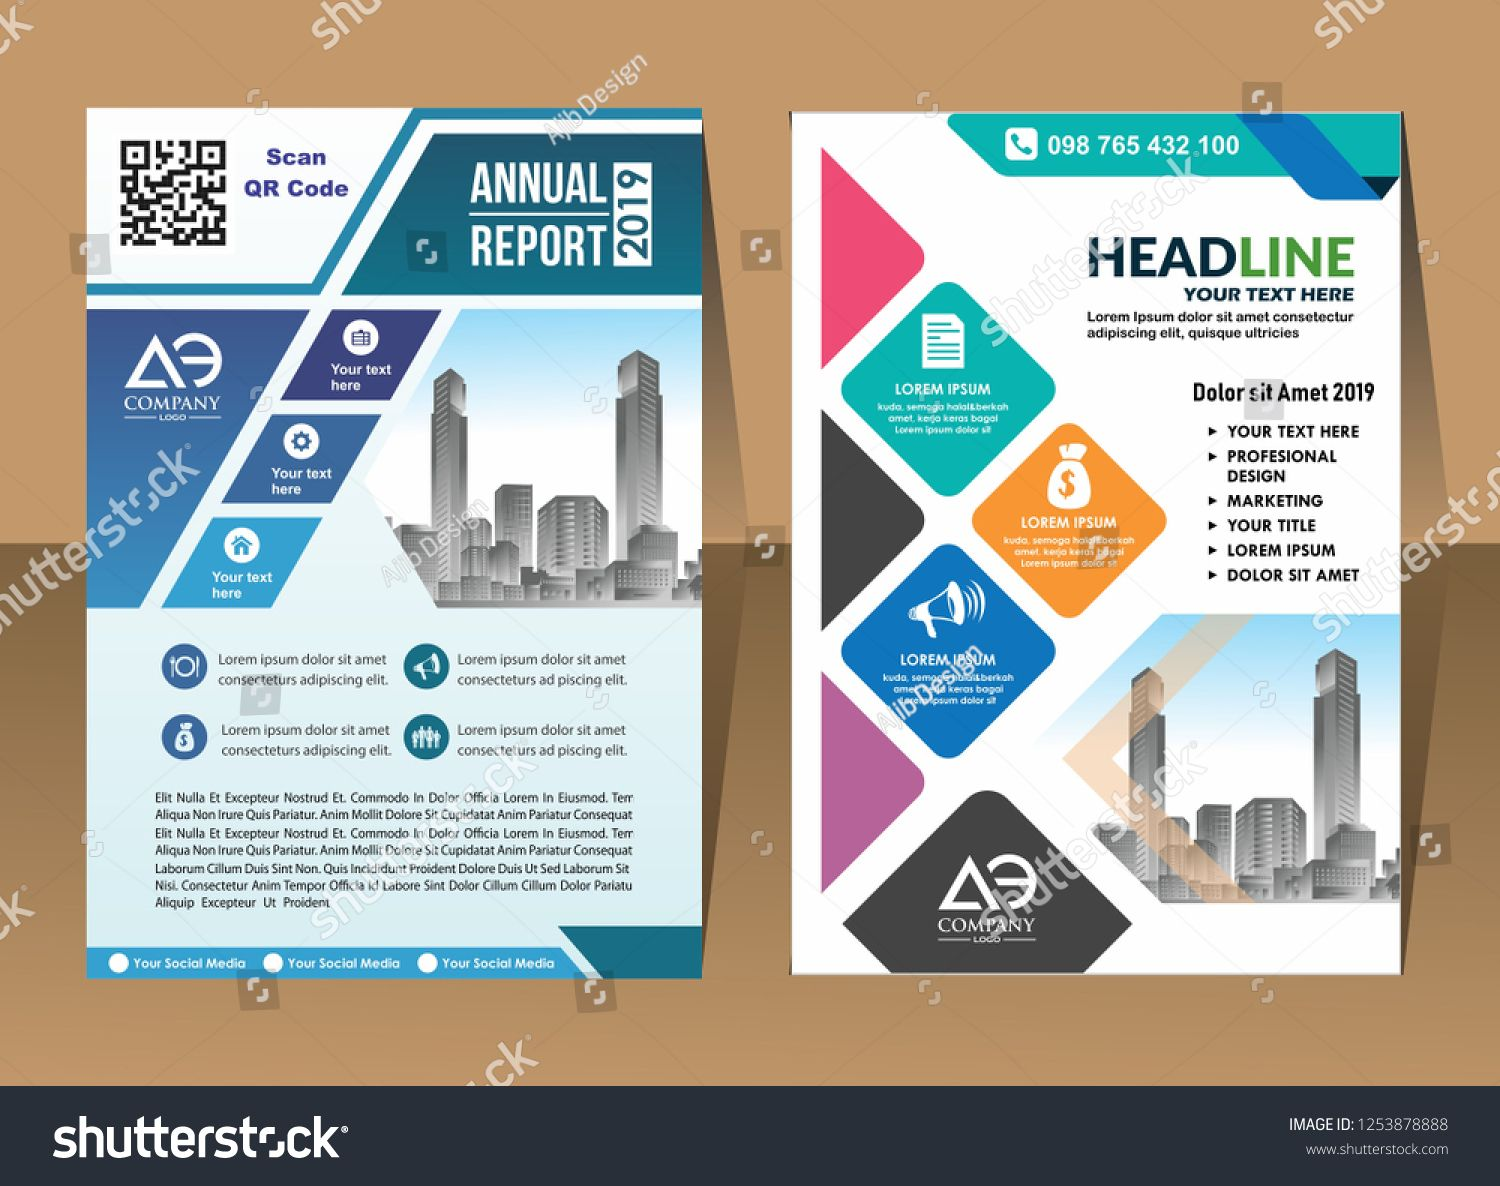 Corporate Flyer Layout Template With Elements And Placeholder For Picture Layout Flyer Corporate Template Corporate Flyer Marketing Design Layout Template